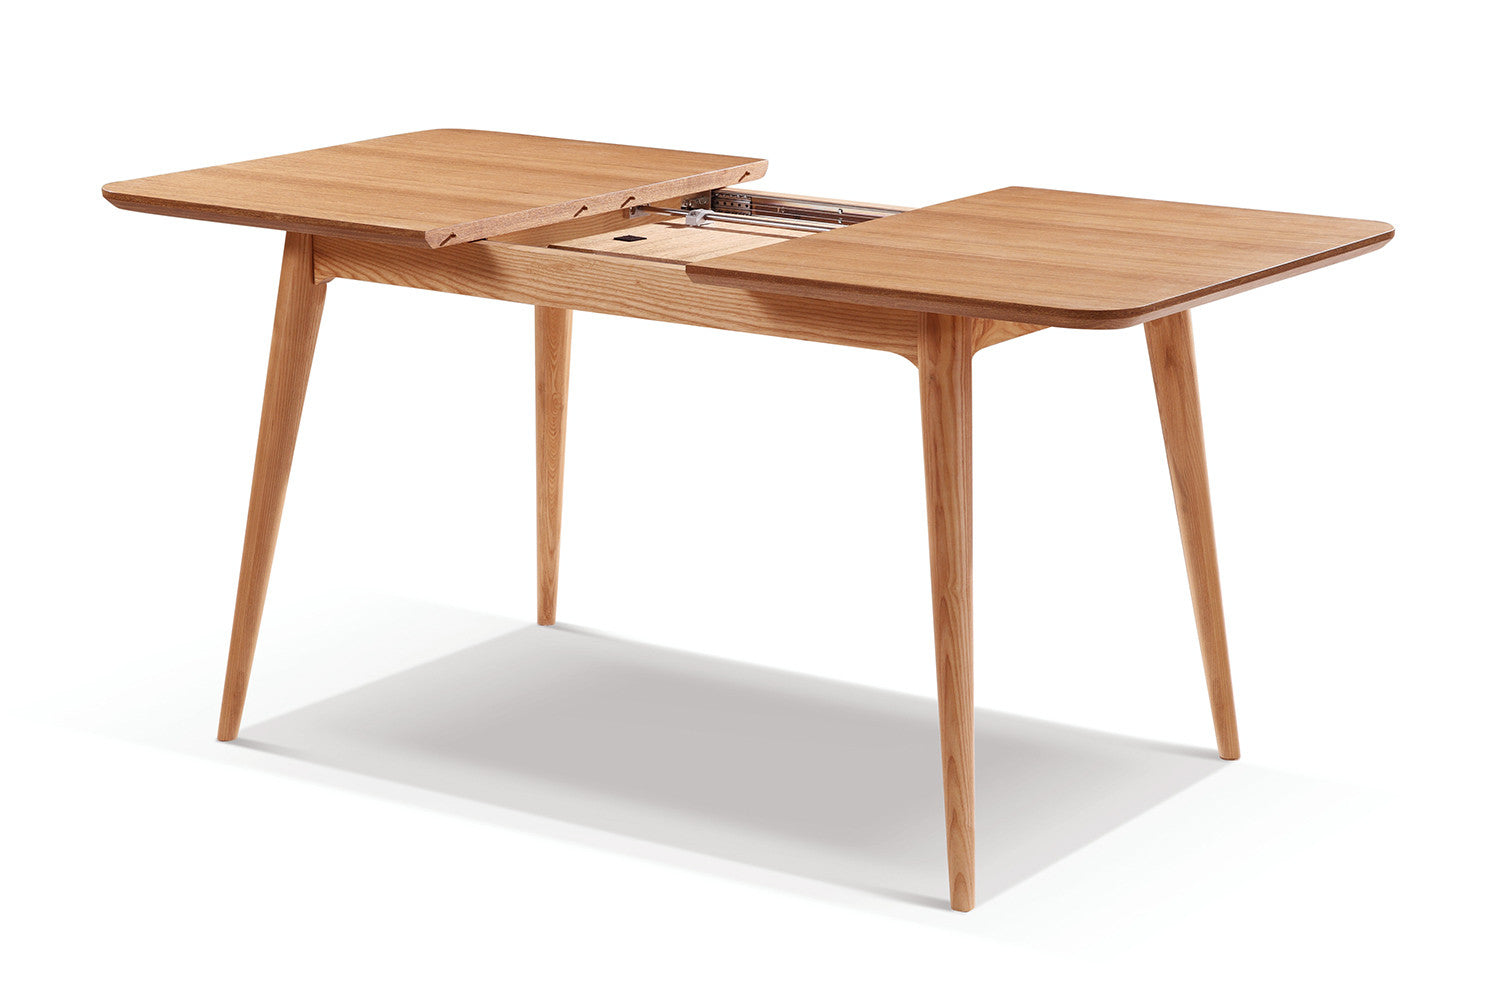 Table de salle manger extensible en bois adda dewarens for Table manger extensible